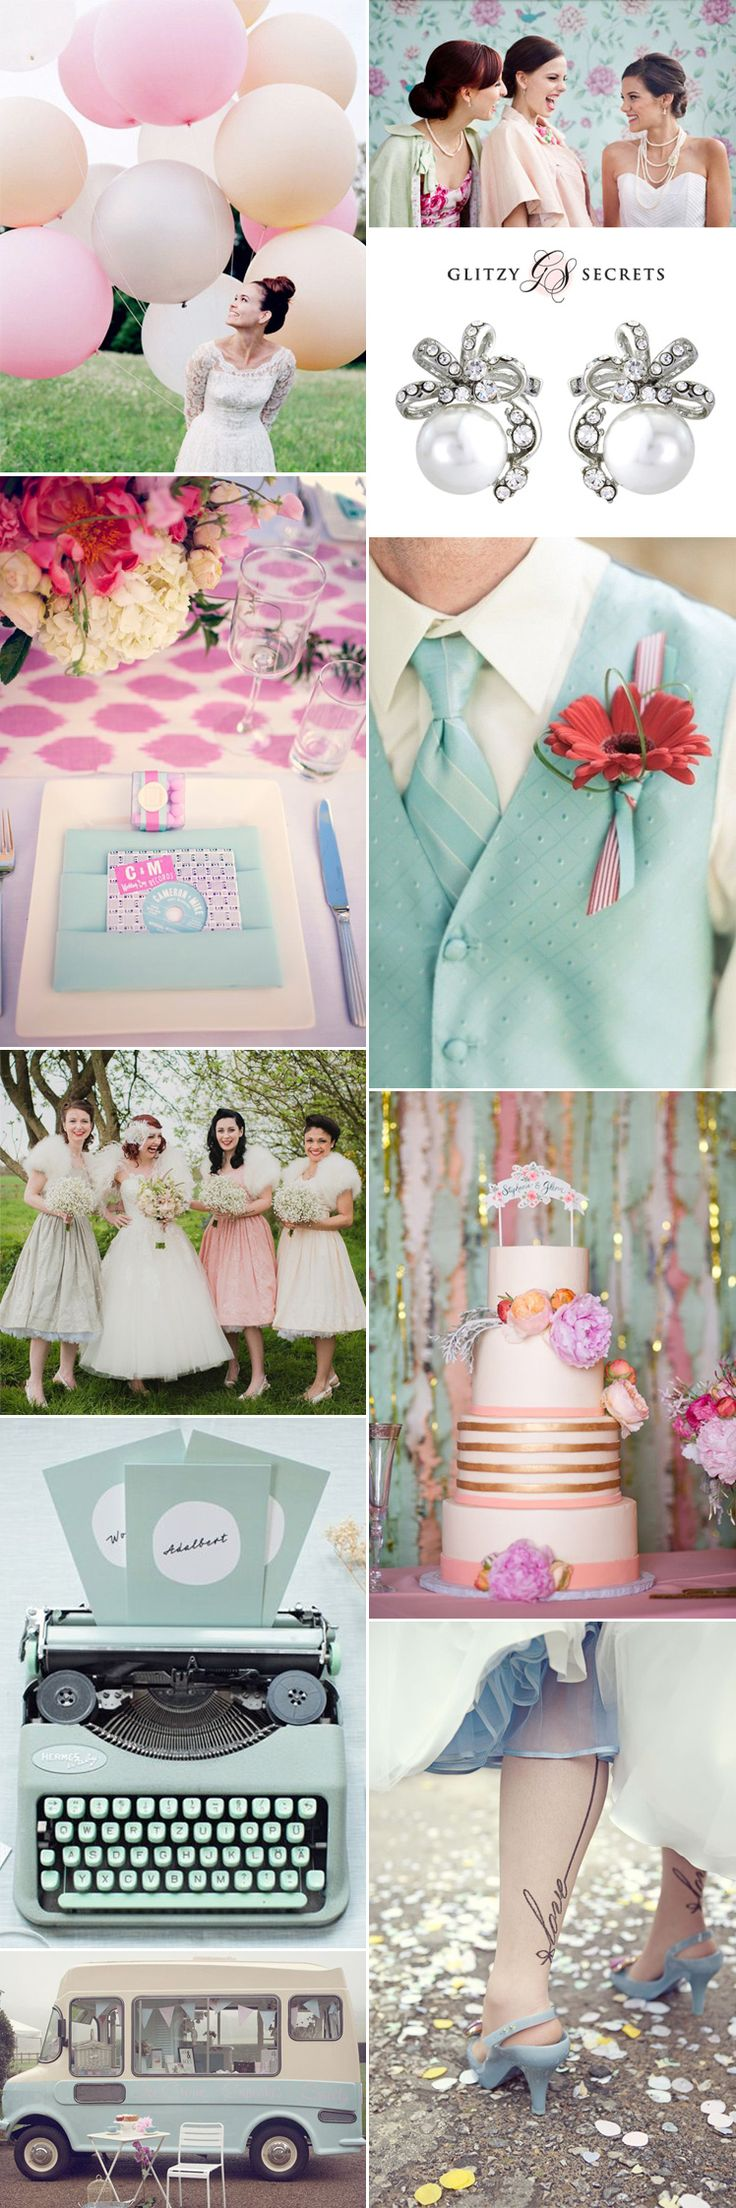 Here is a little look at some 1950s inspired wedding ideas that are, as a fifties kid might say, so cool they're made in the shade...